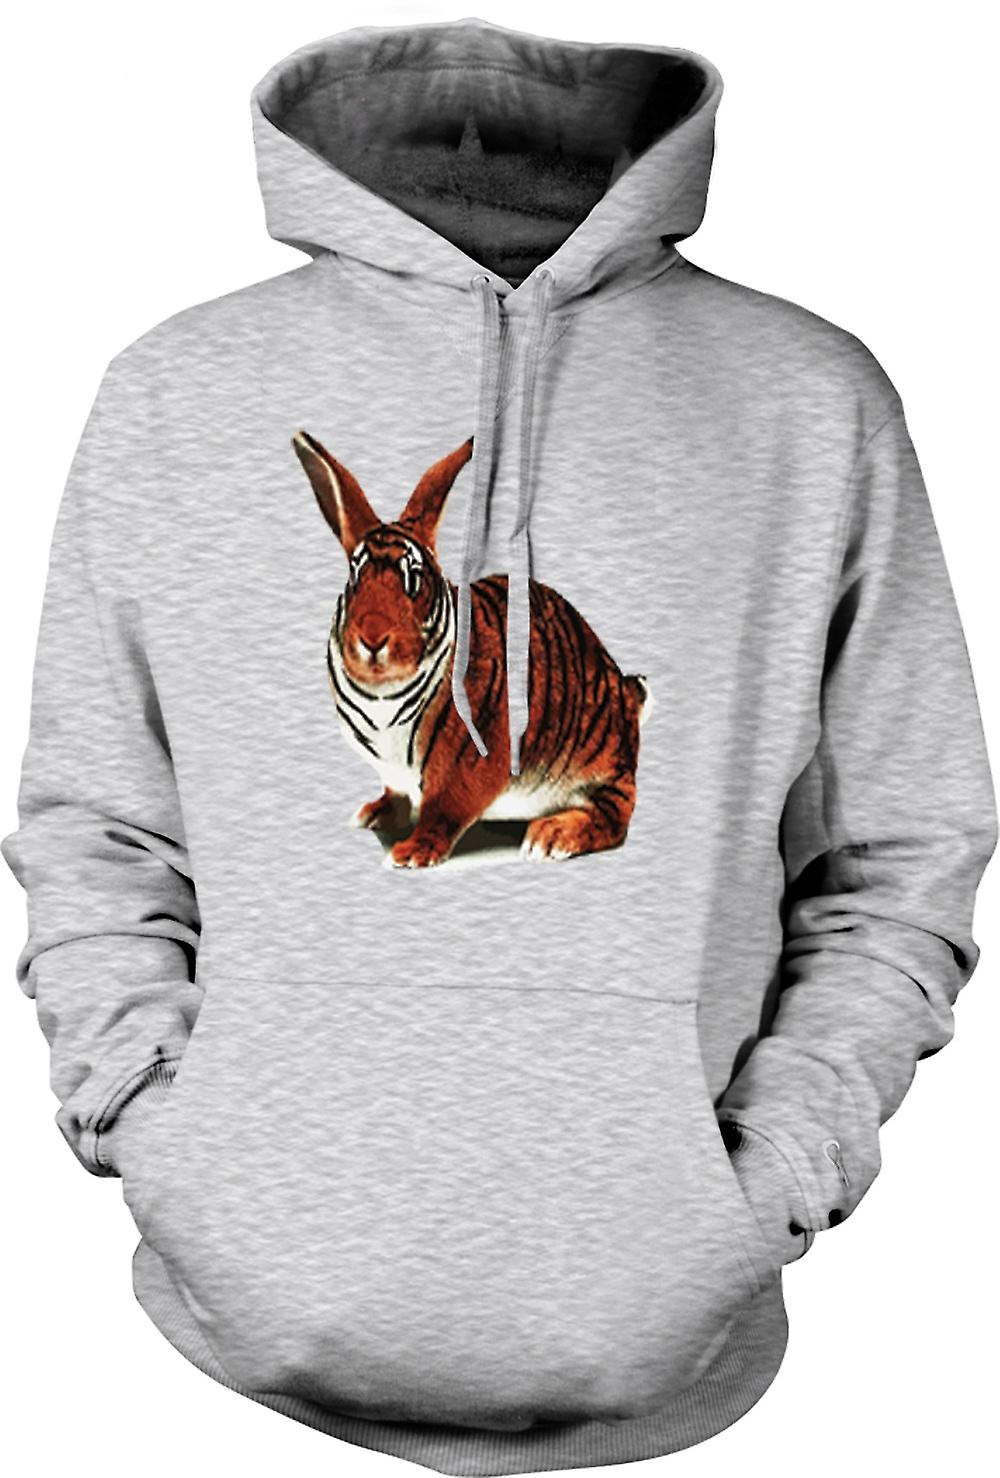 Mens Hoodie - Tiger konijn Pop Art Design